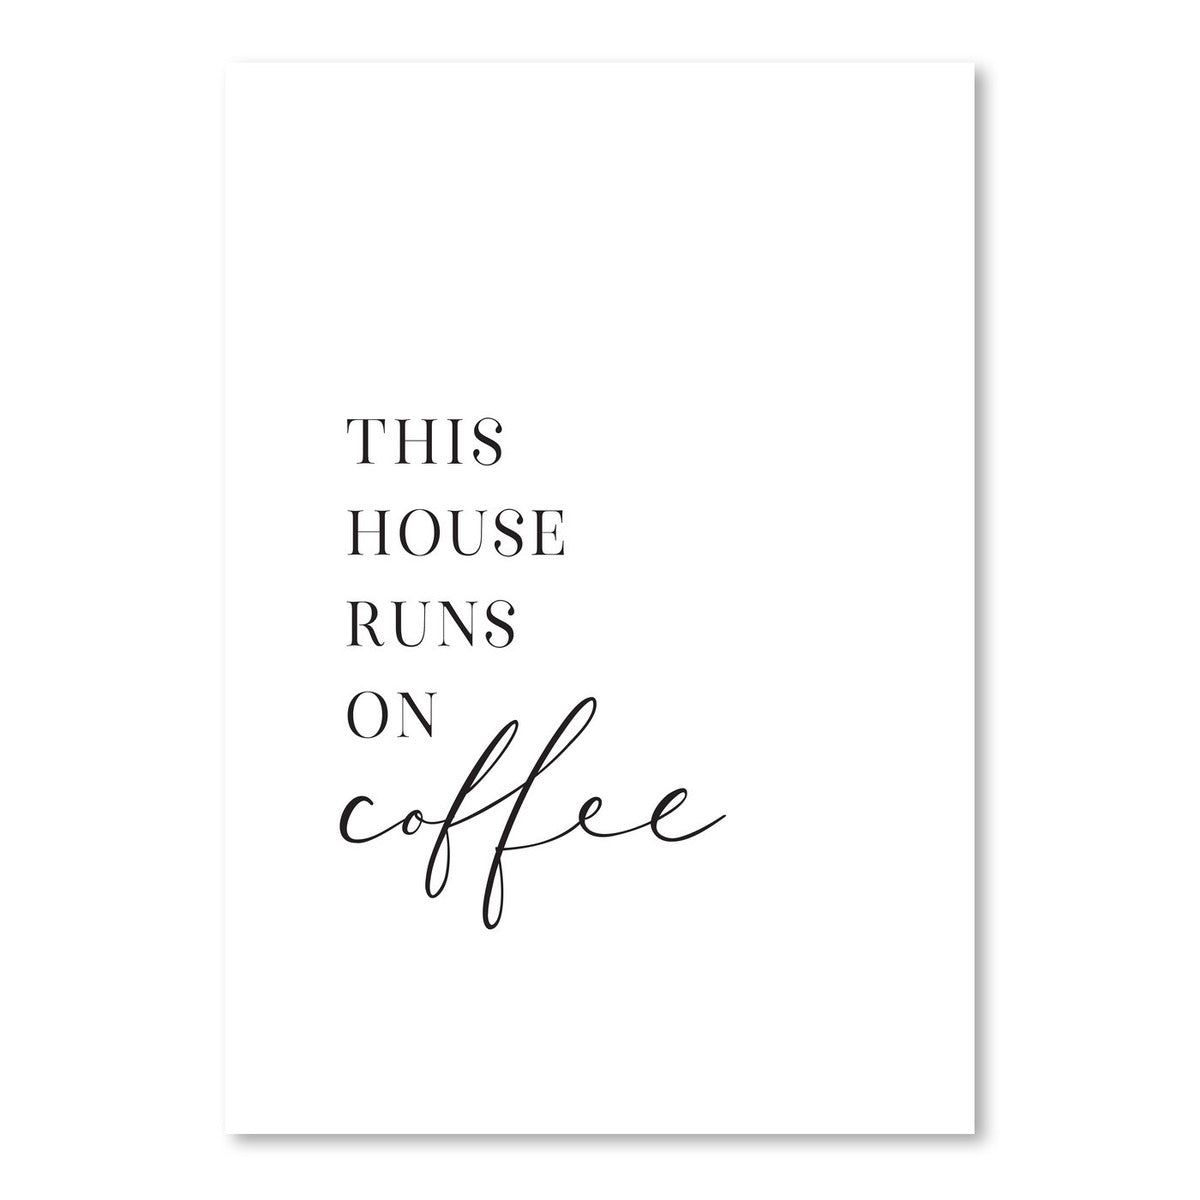 This House Runs On Coffee by Blursbyai - Art Print - Americanflat